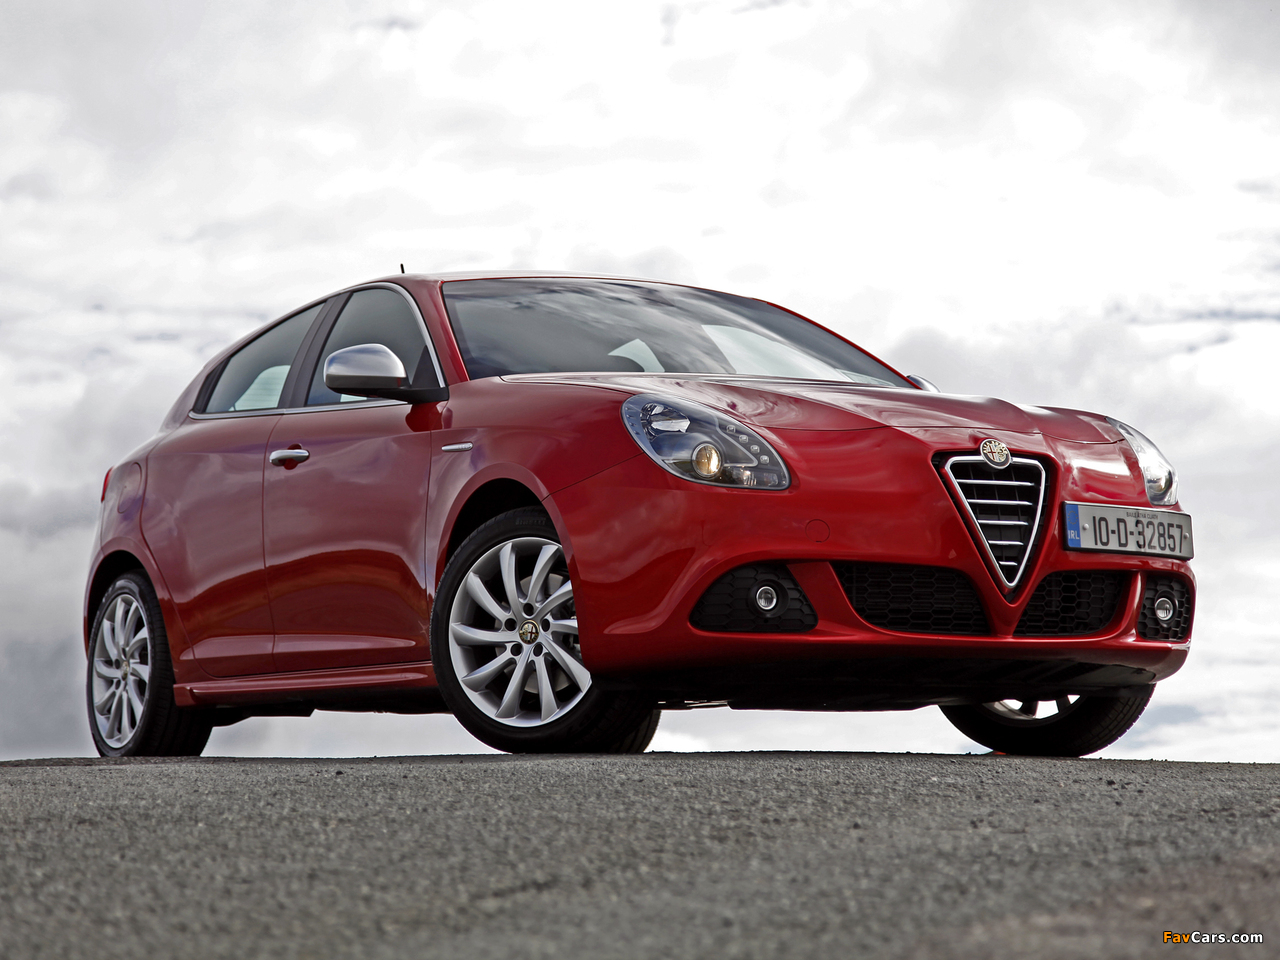 Alfa Romeo Giulietta UK-spec 940 (2010) pictures (1280 x 960)